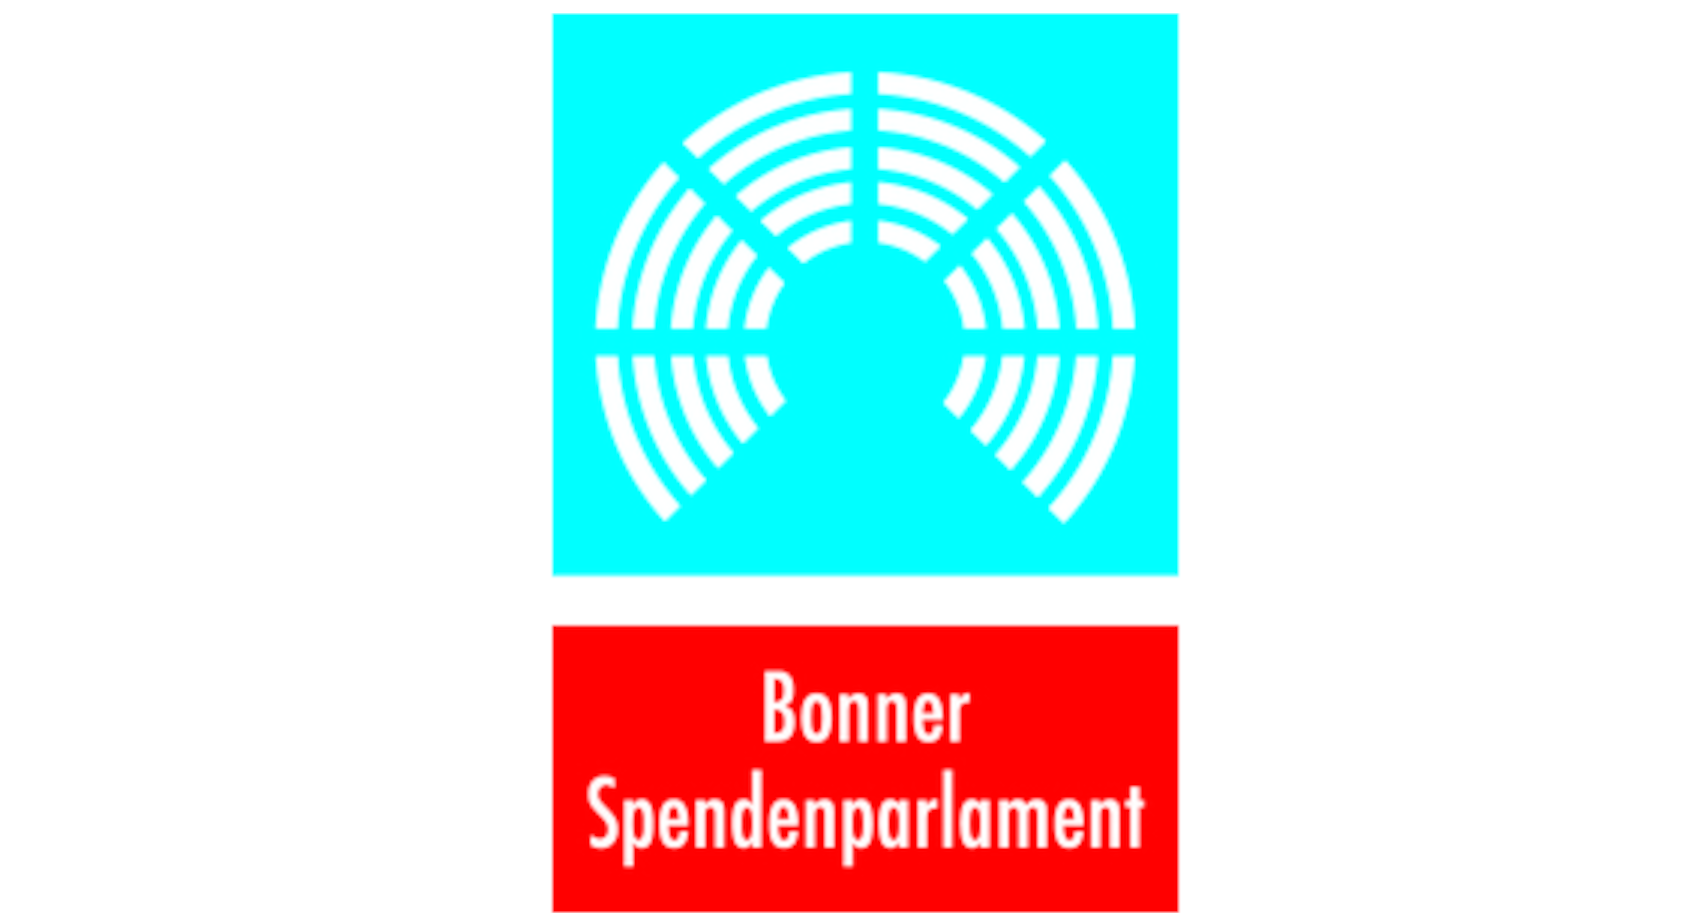 BonnerSpendenparlament